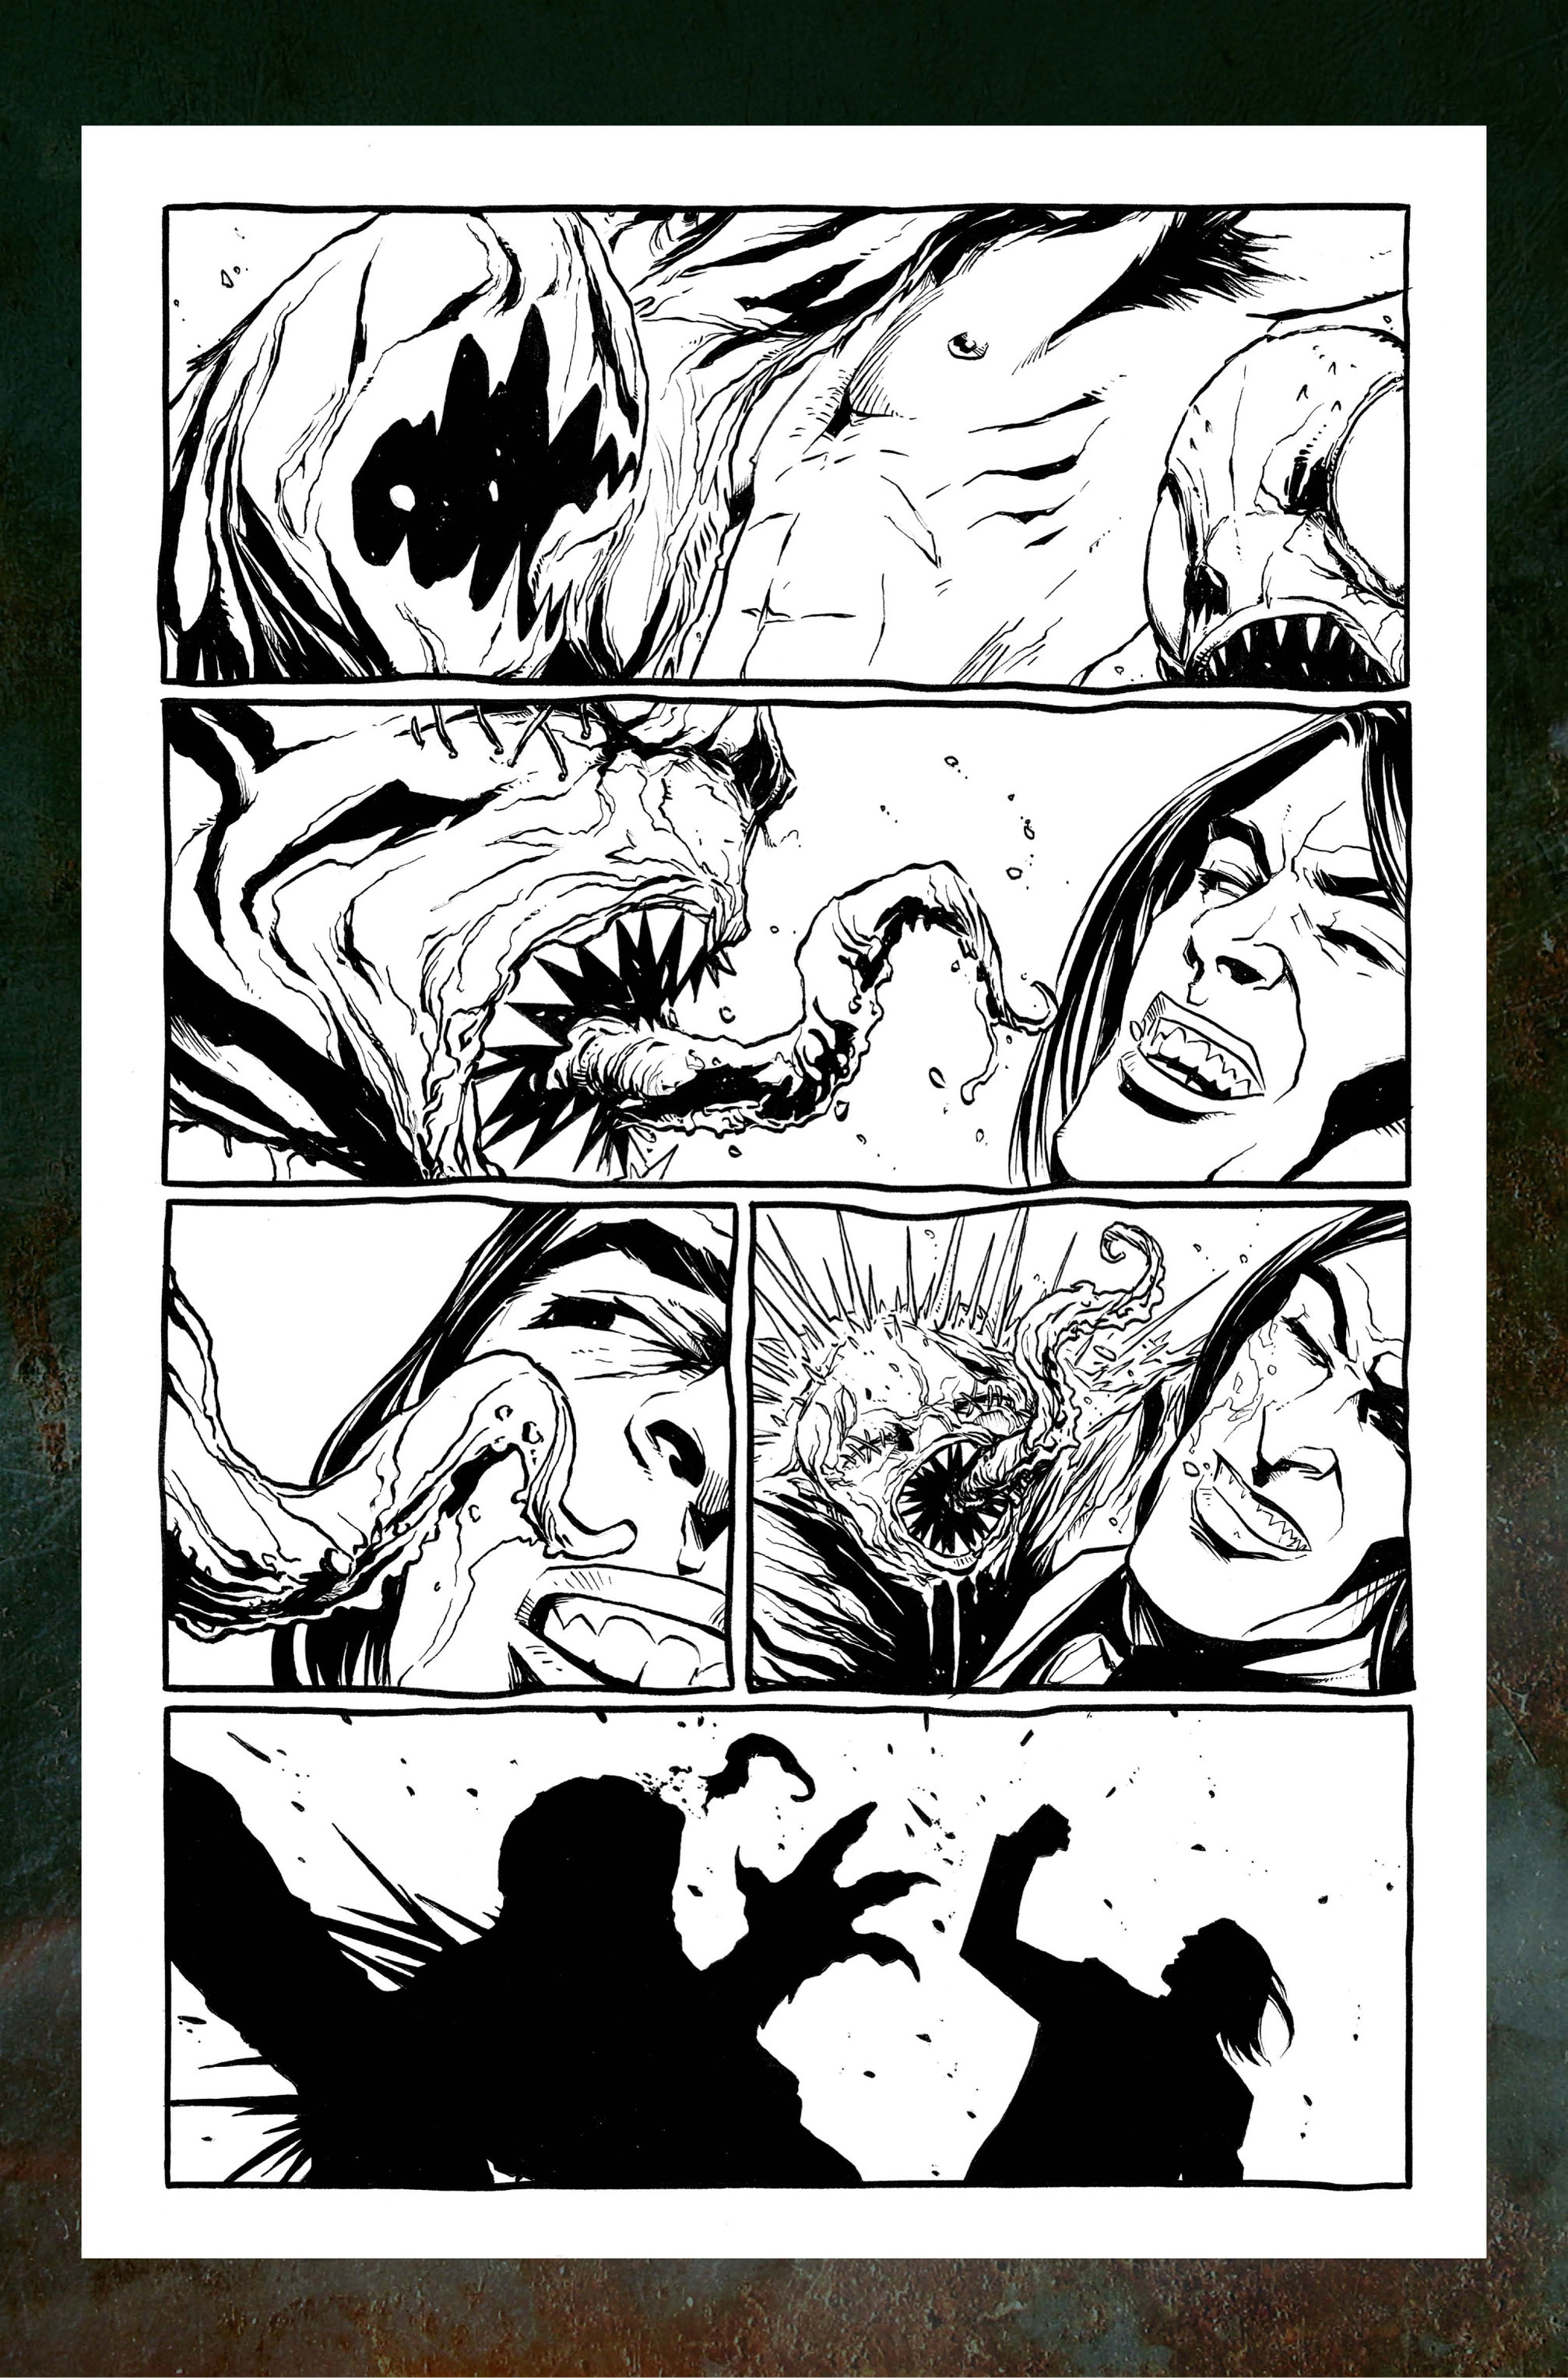 The Darkness (2007) chap 115 pic 36